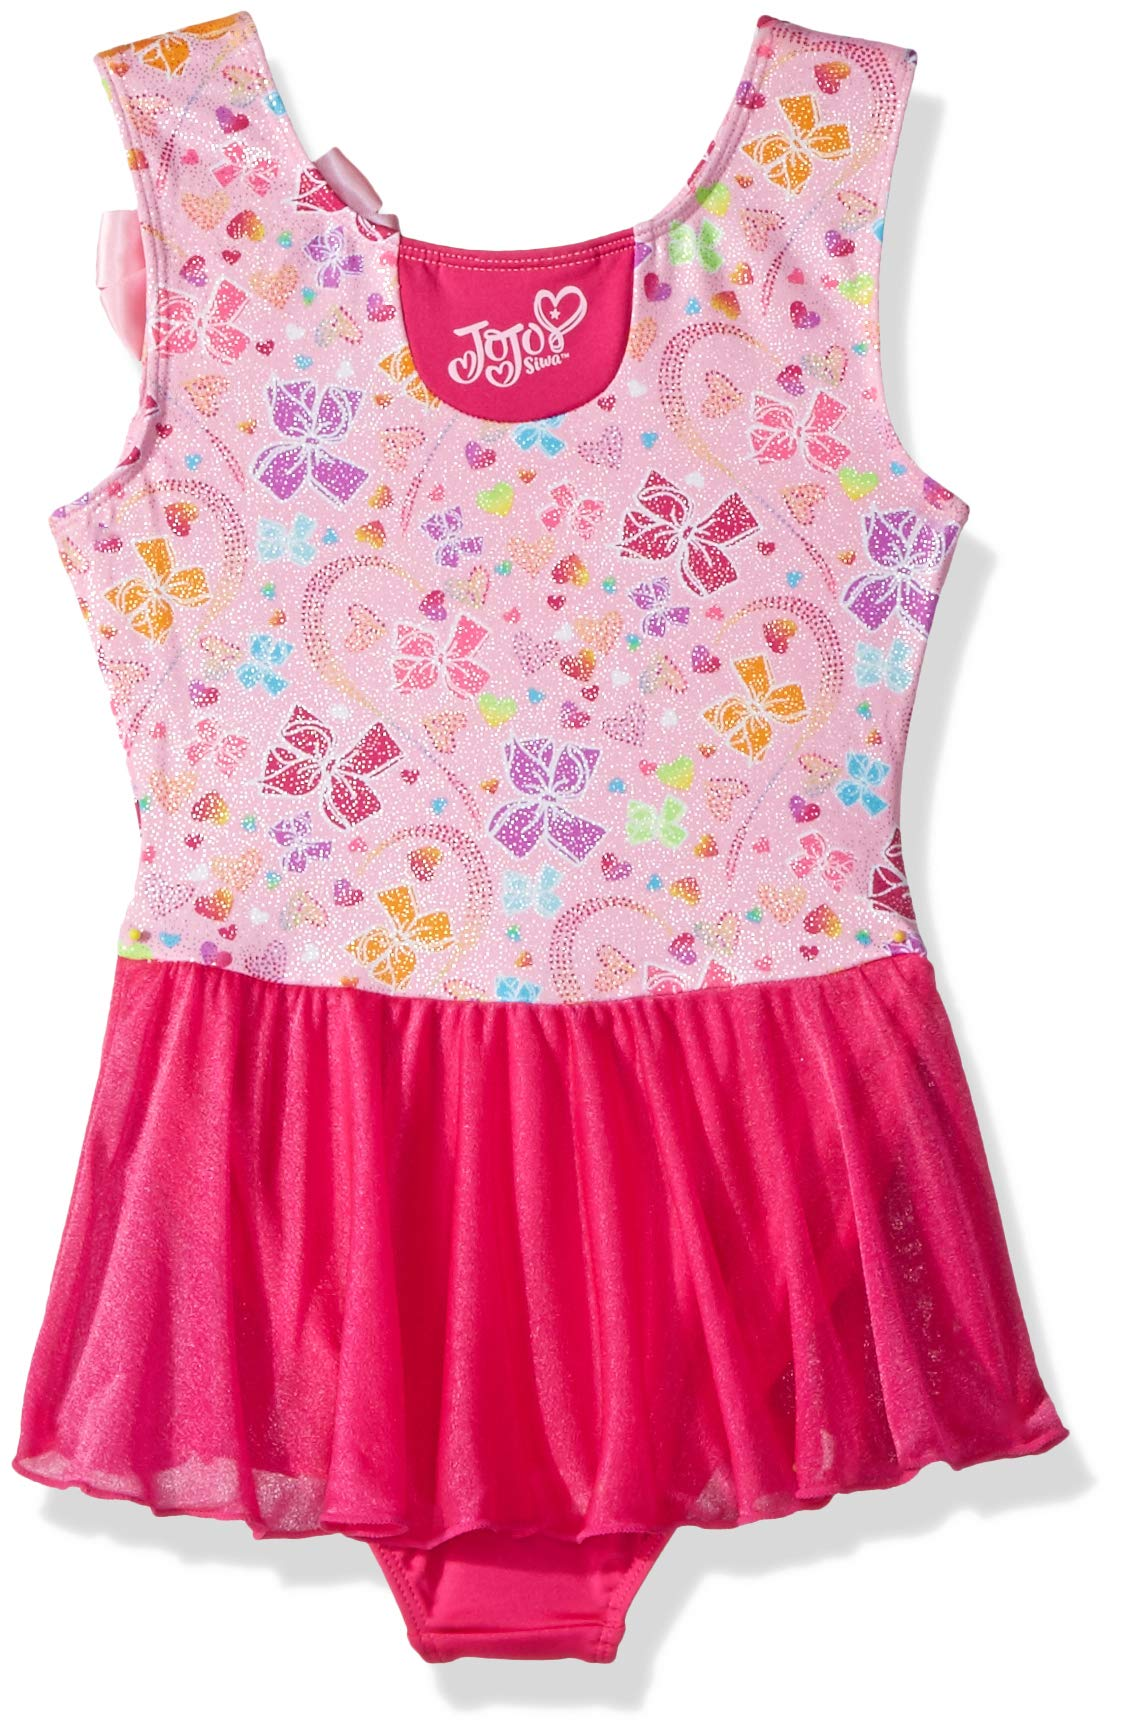 Nickelodeon Girls' Big Rainbow Bows Tank Dance Dress, Sugar Pink Pretty, Small by Nickelodeon (Image #2)